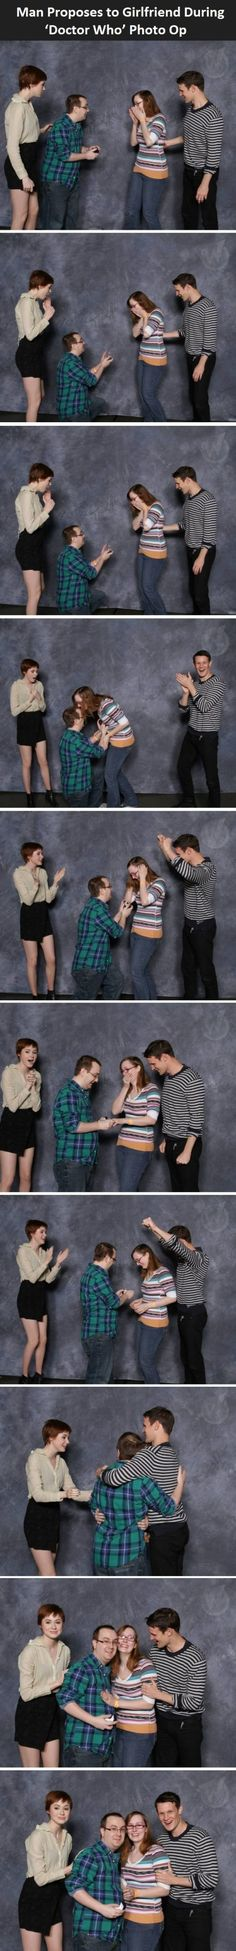 Doctor Who Proposal omg i can't even<-this is why nerds rule the world<< This is the best thing at the internet.